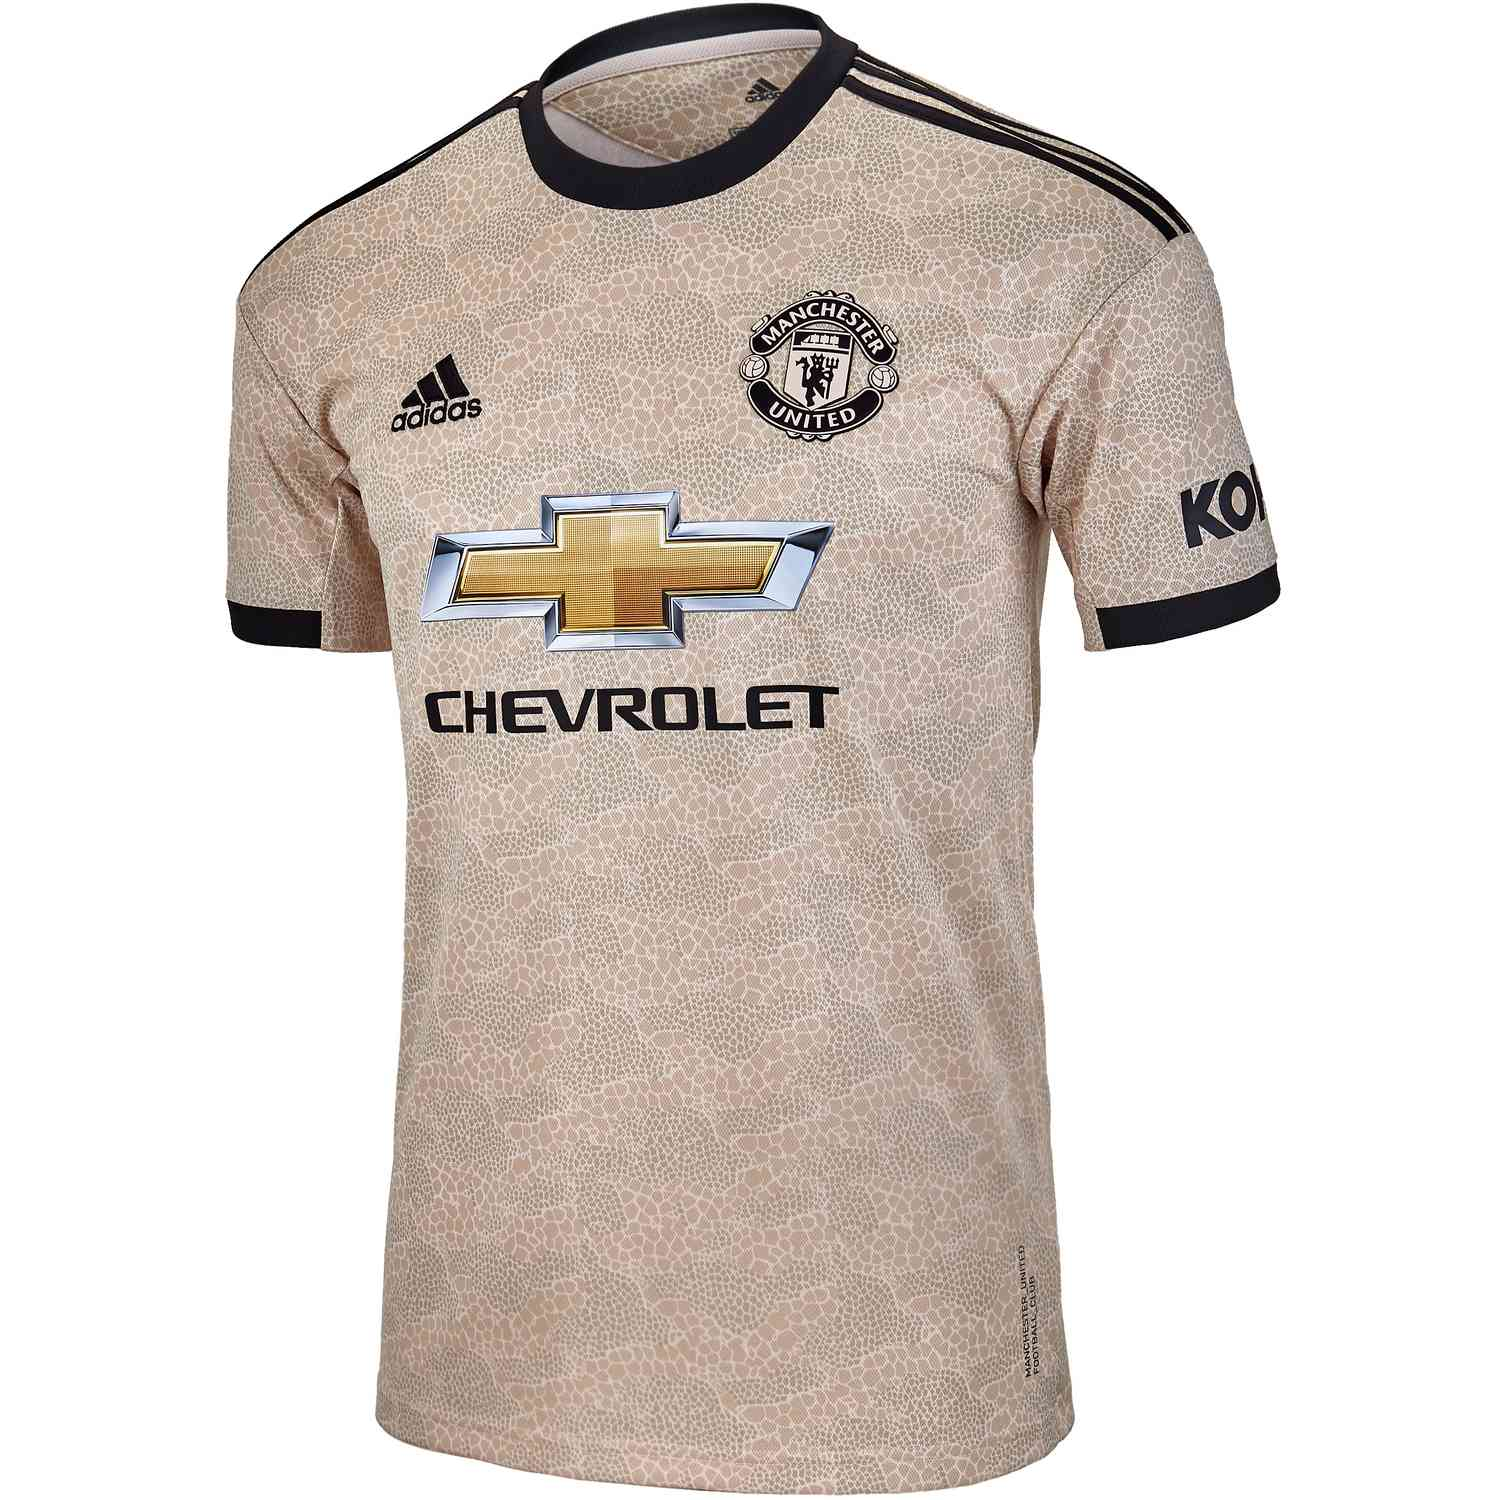 finest selection a4090 0b2e4 2019/20 Marcus Rashford Manchester United Away Jersey - Soccer Master